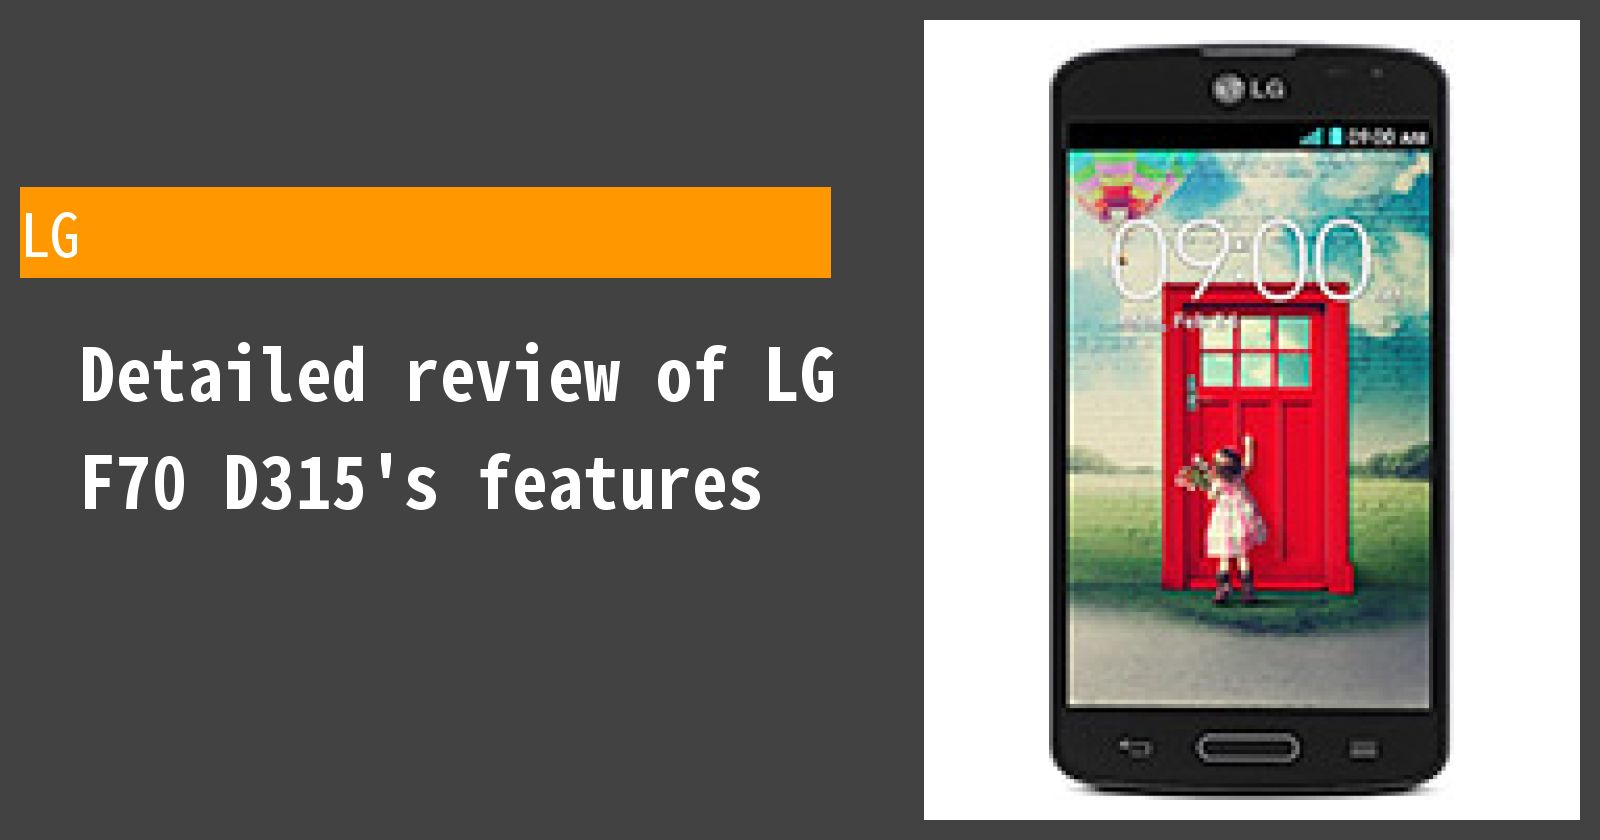 Detailed review of LG F70 D315's features